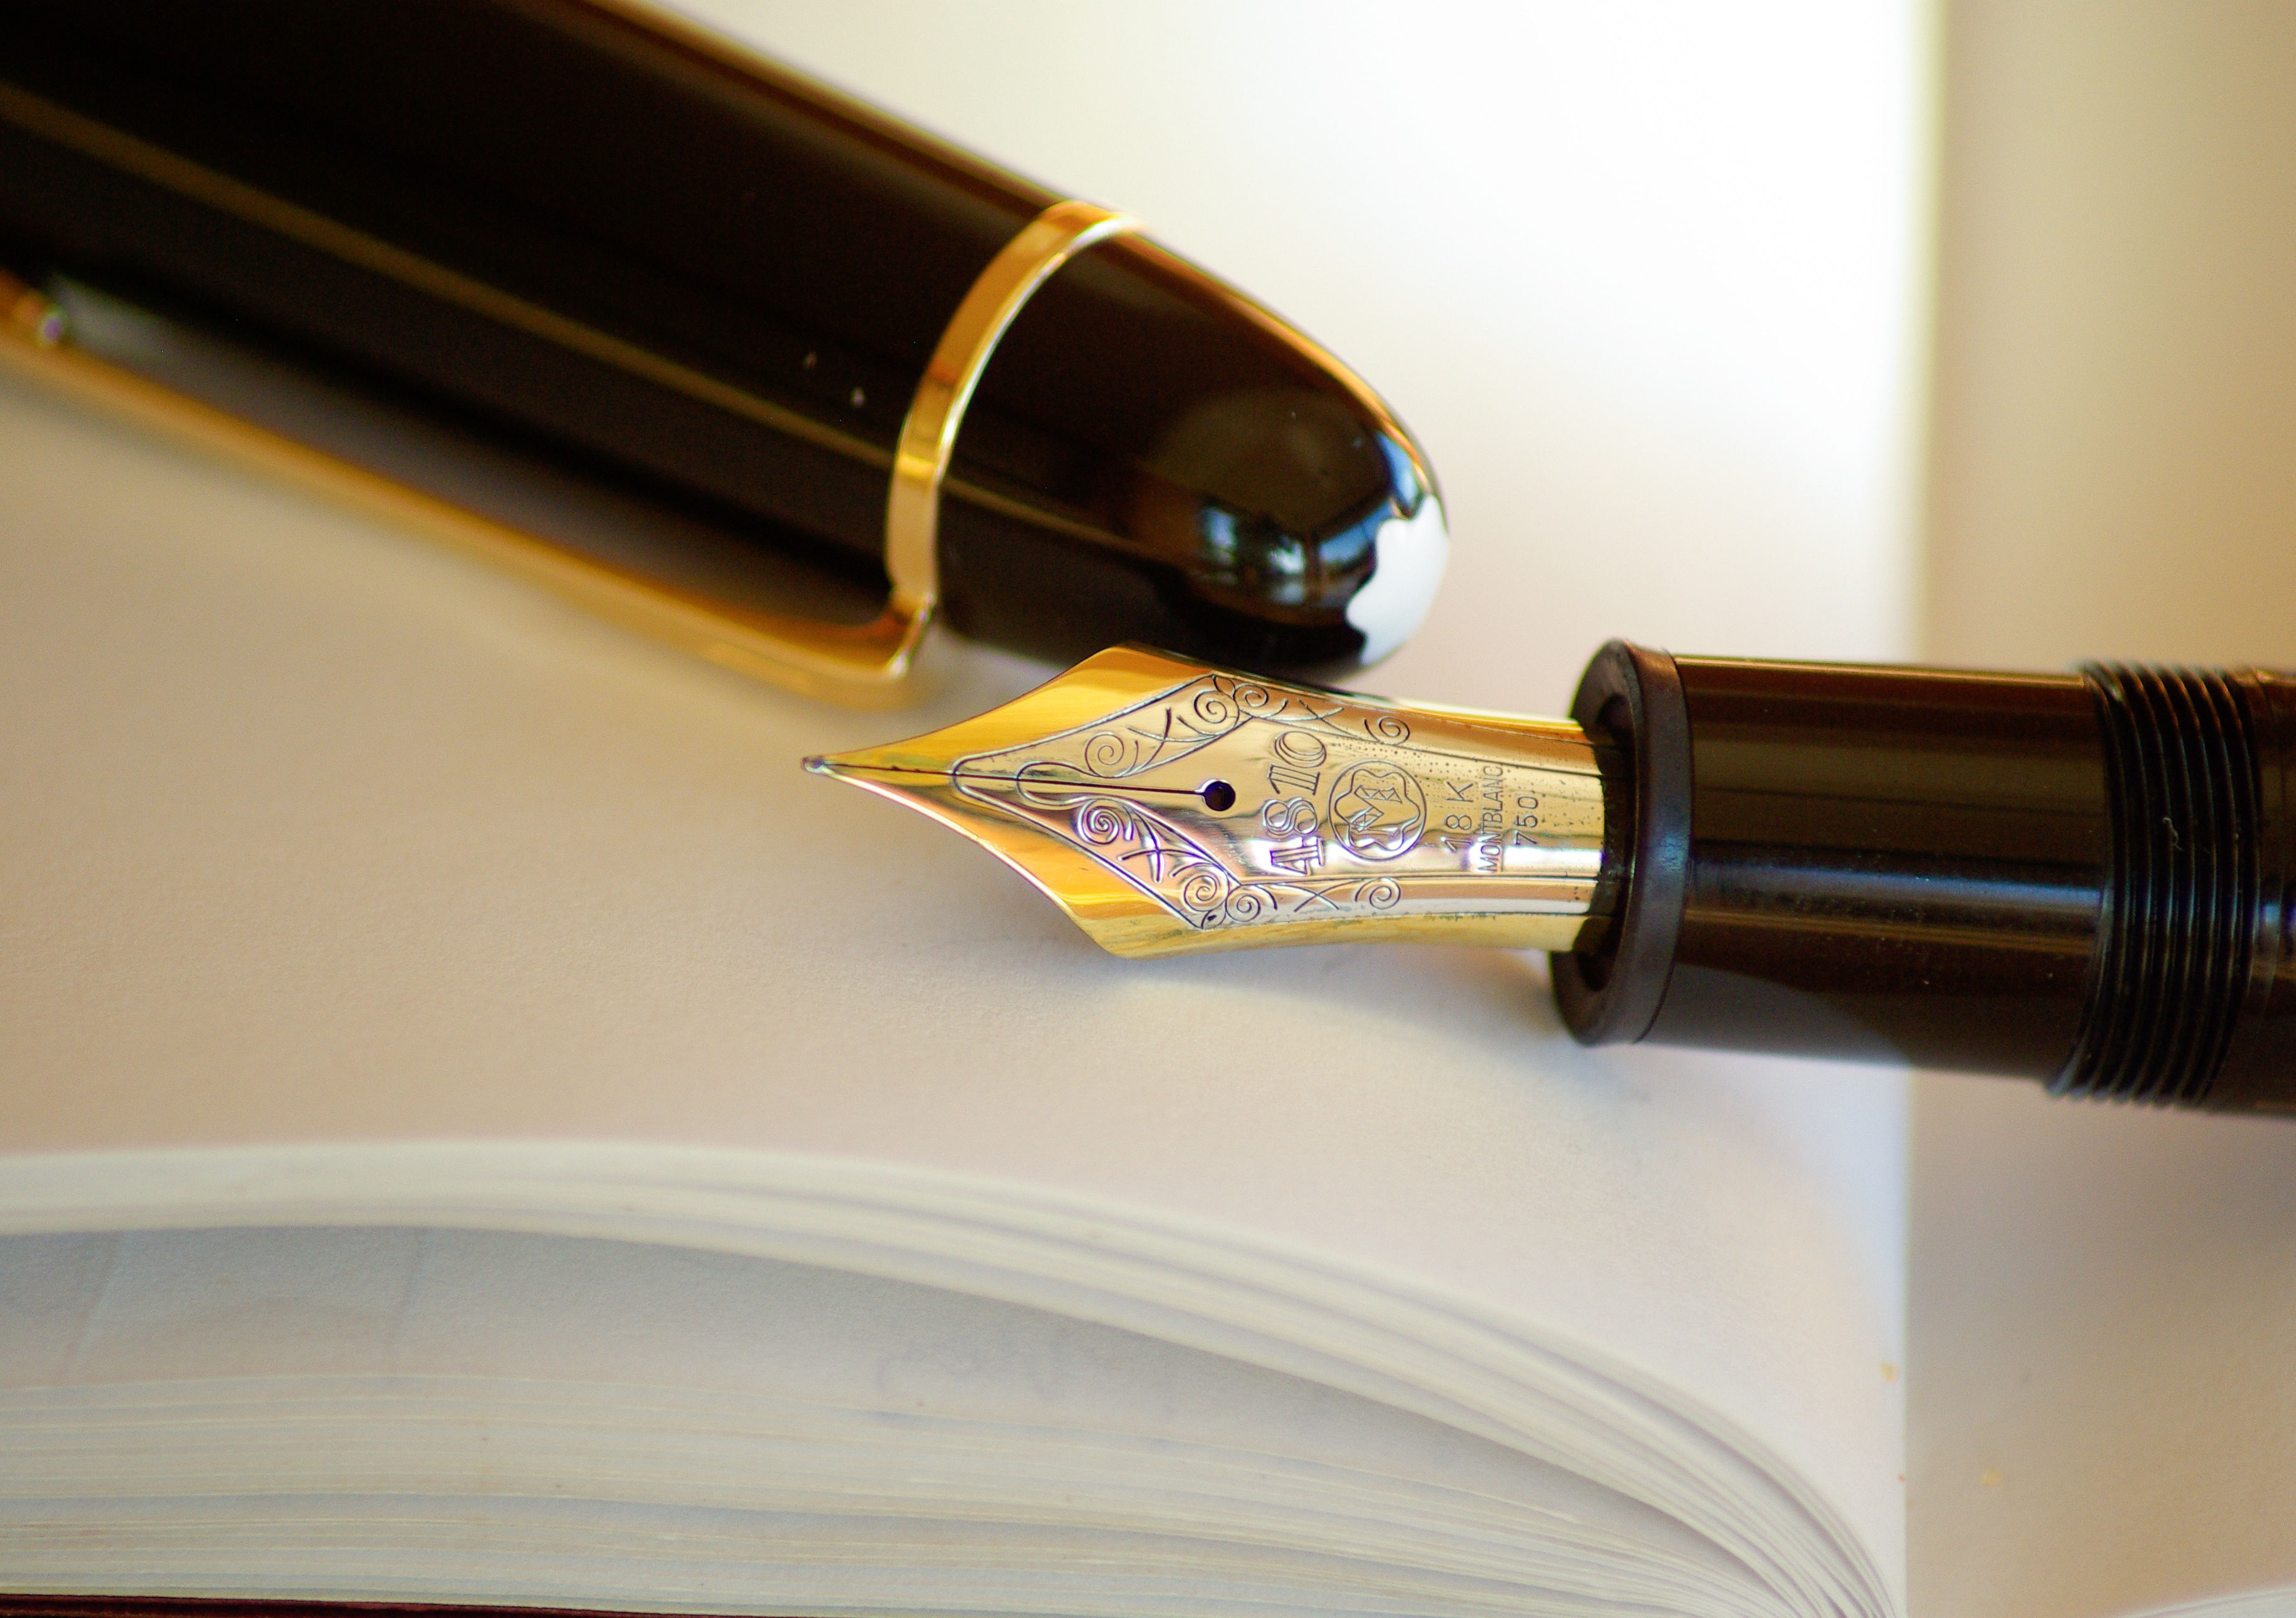 Free Ink Pens Gold And Silver Nib Black Holder Pen A Free Stock Photo